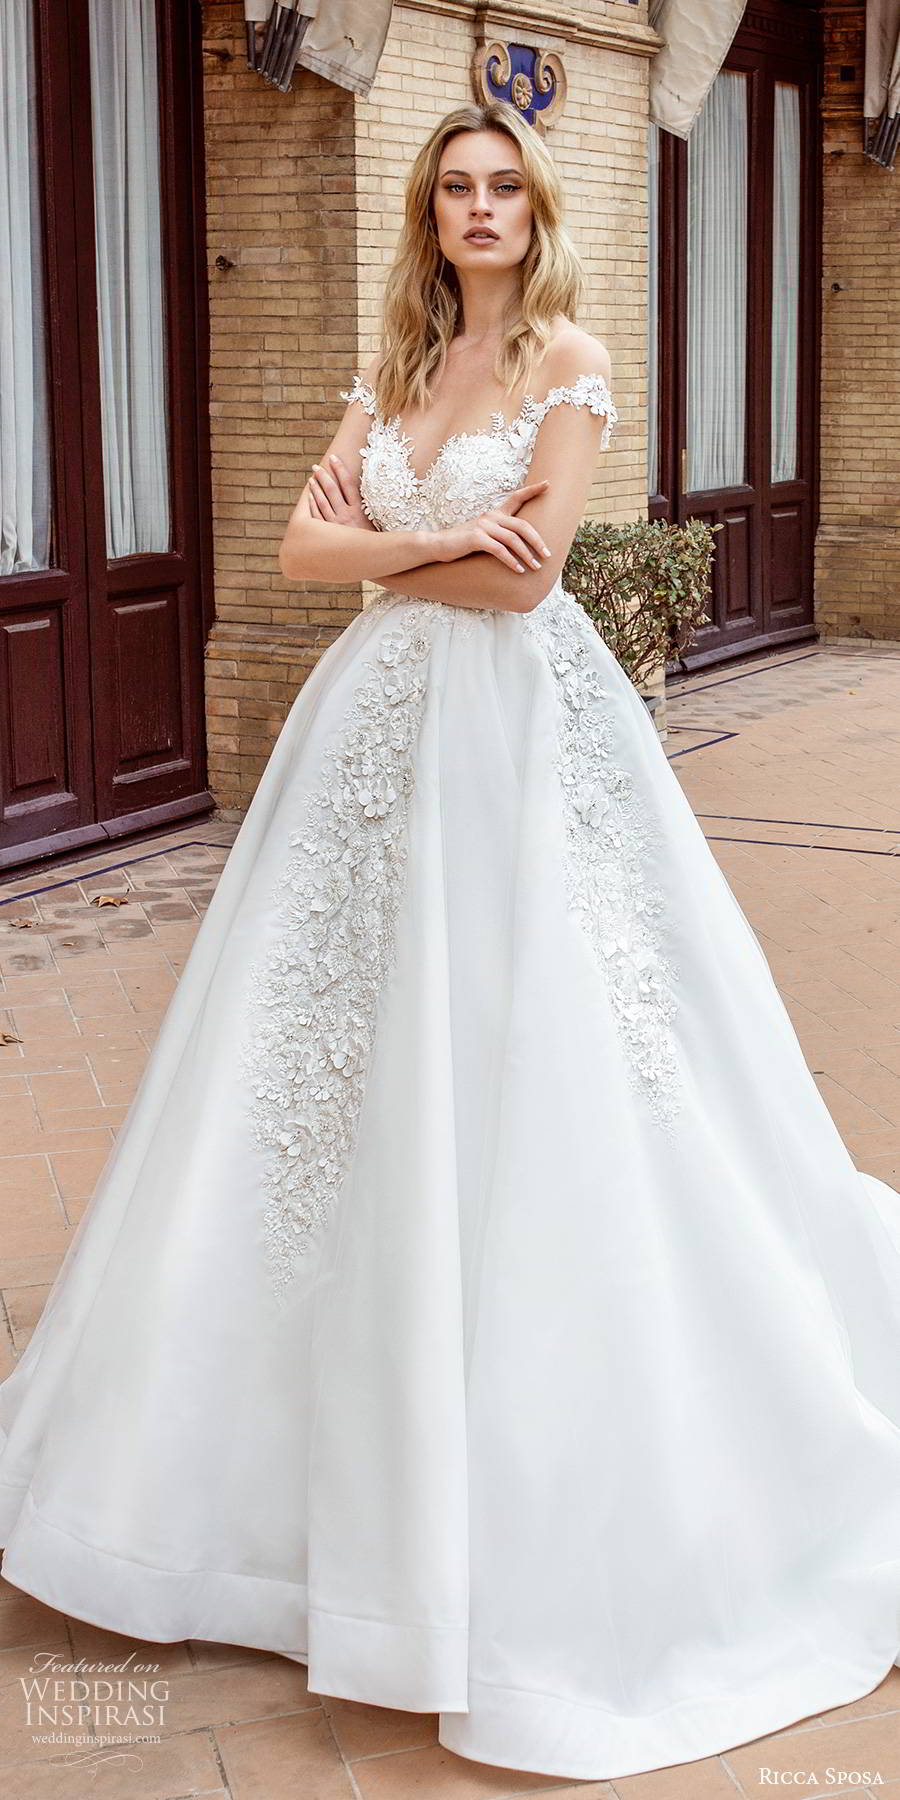 ricca sposa 2019 bridal illusion cap sleeves off shoulder sweetheart neckline fully embellished a line ball gown romantic wedding dress scoop back cathedral train (11) mv